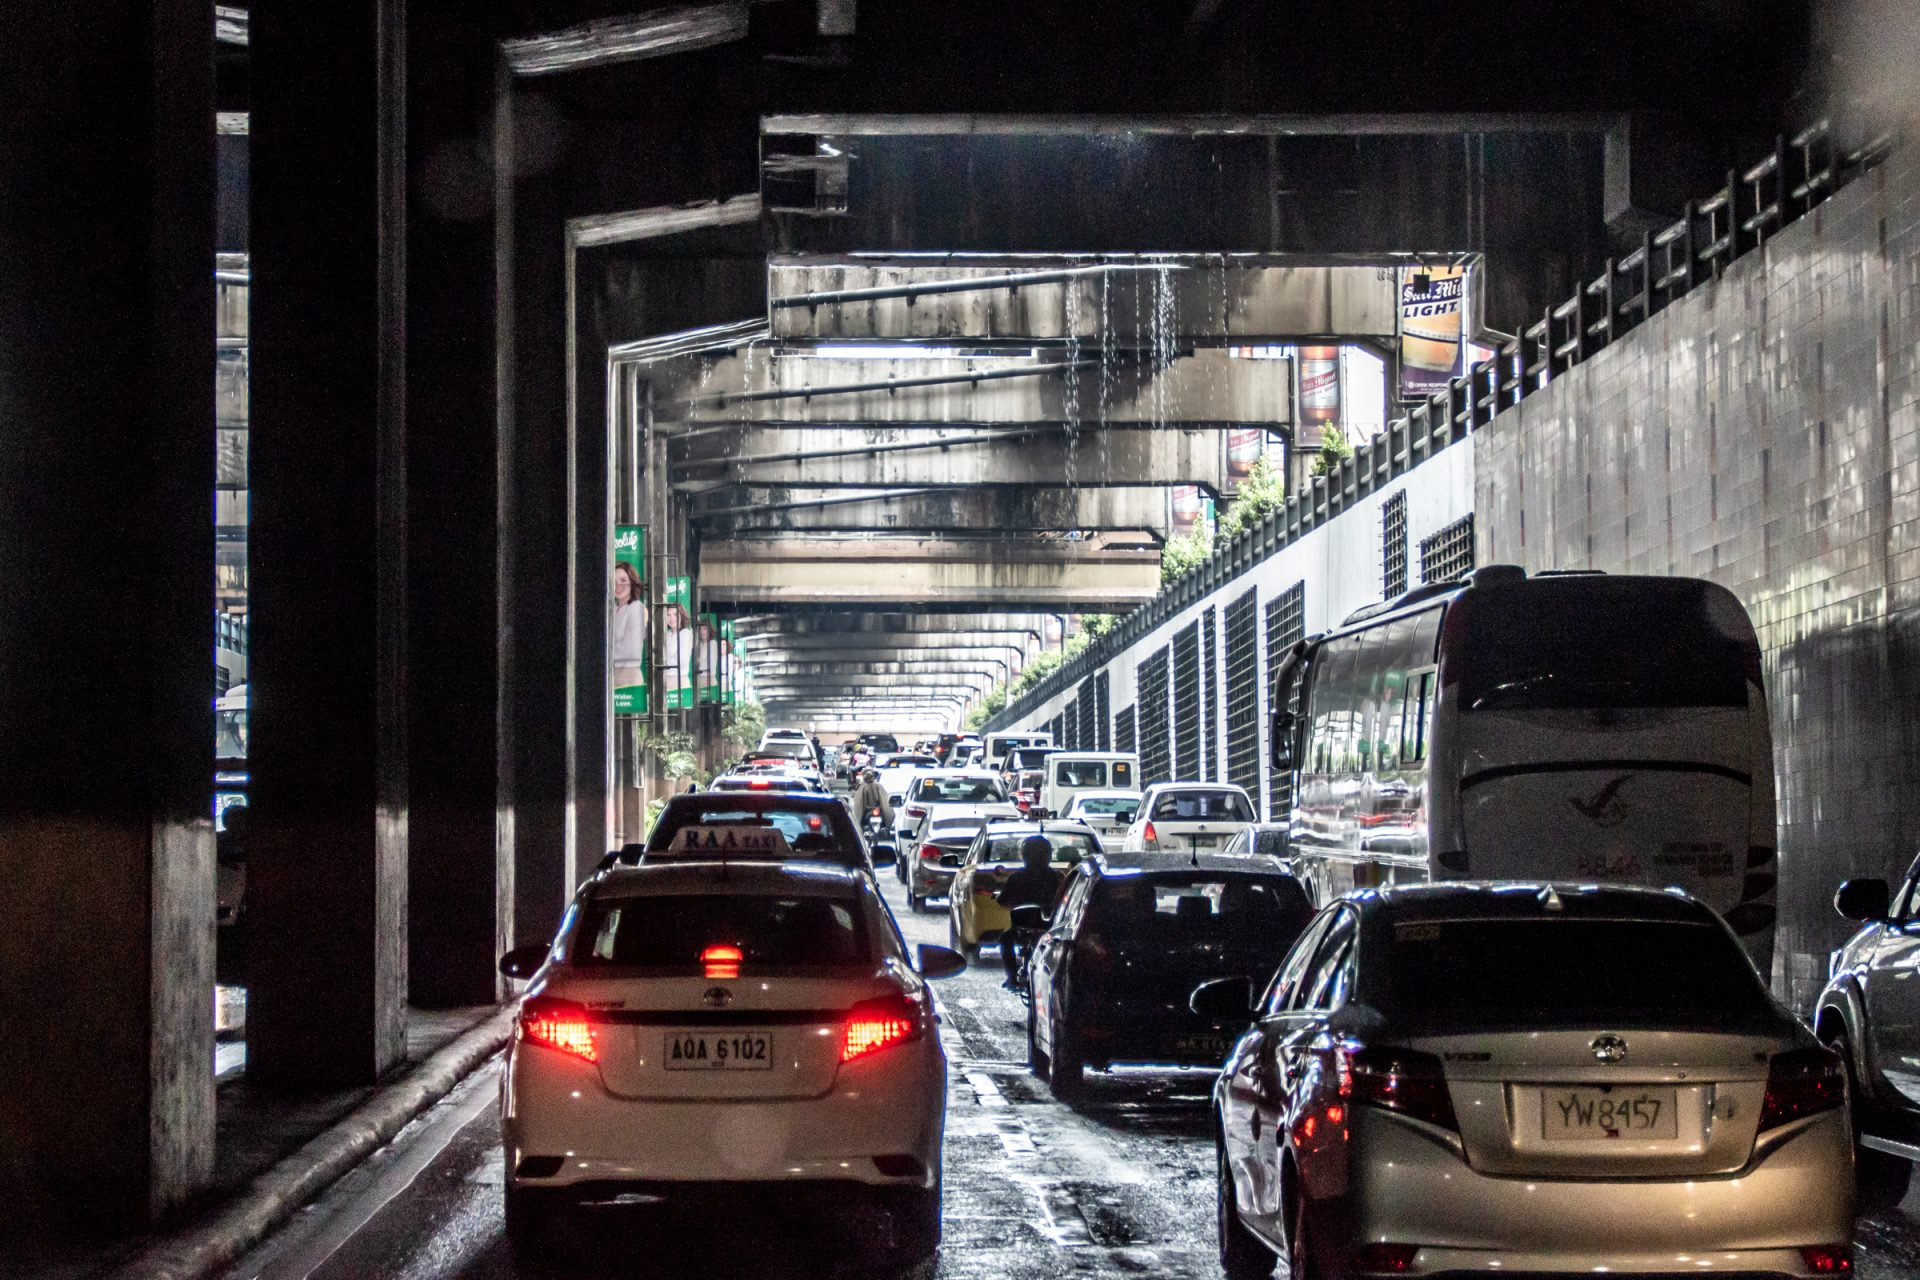 Vehicles In Traffic Jam Inside Tunnel